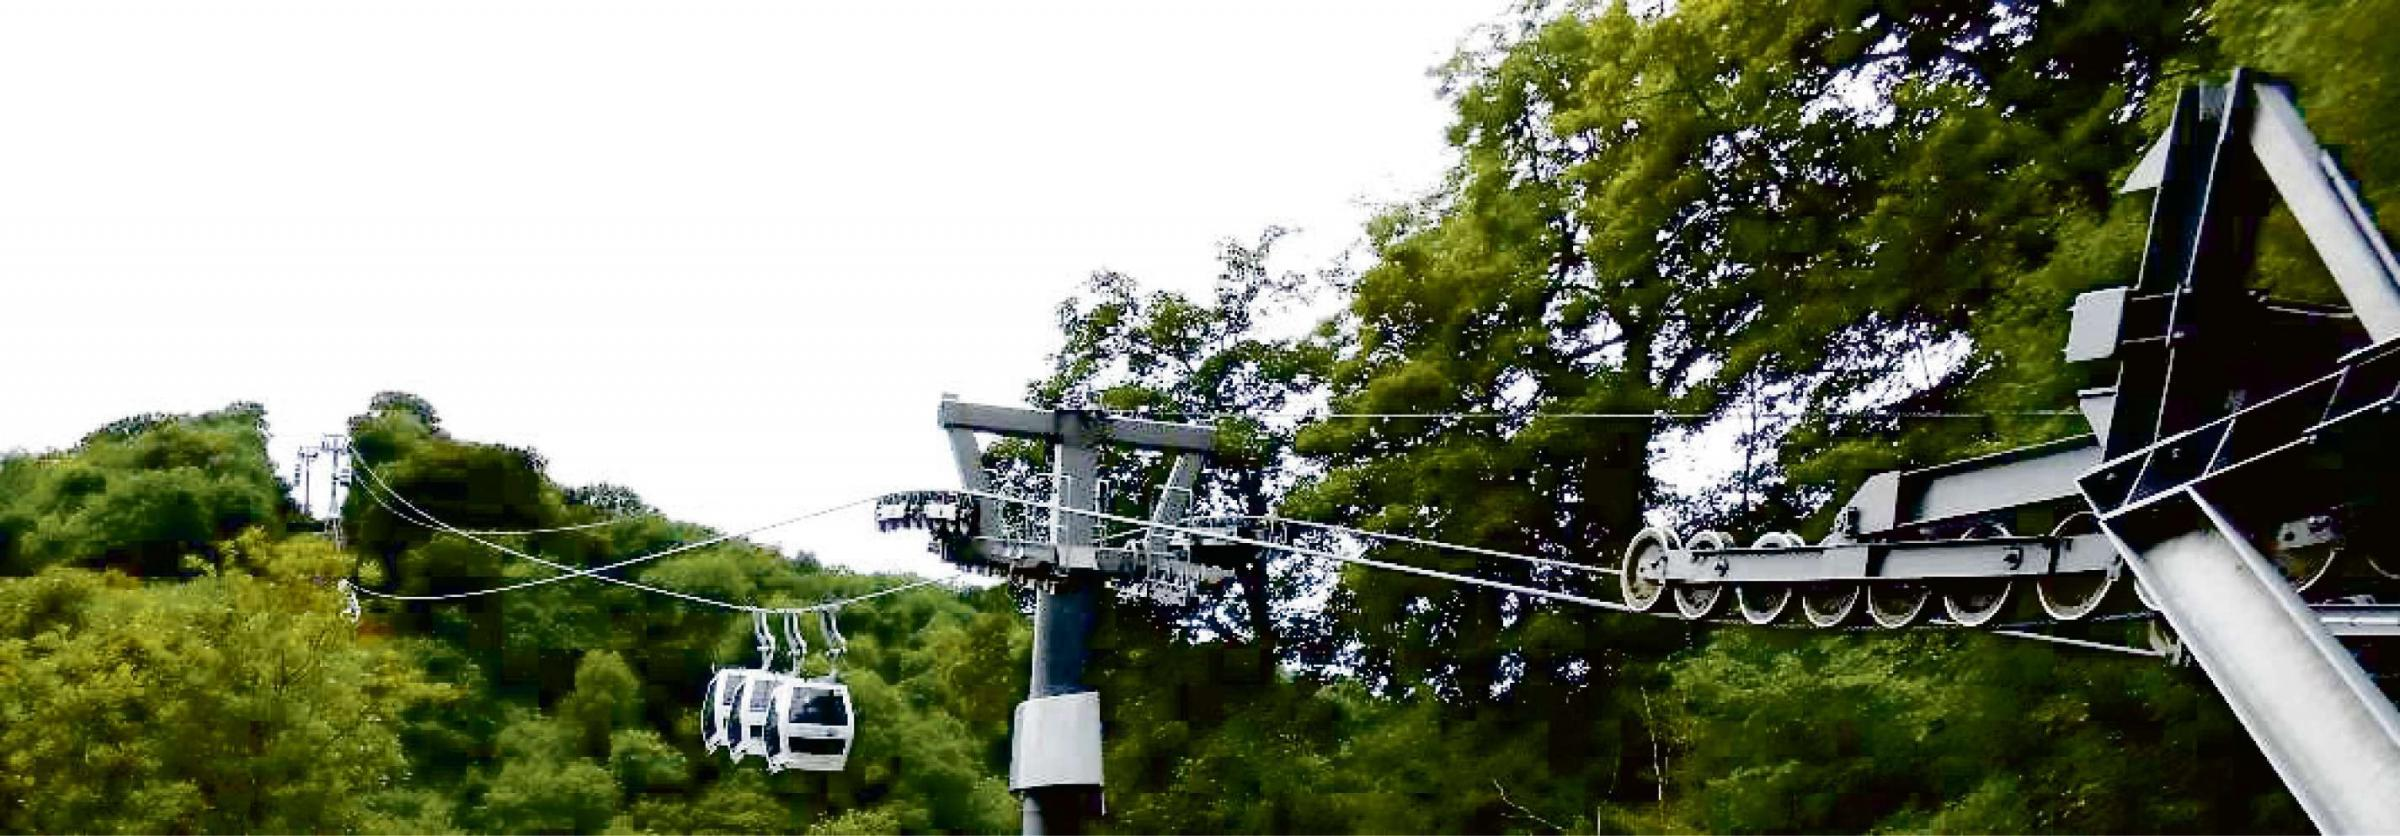 Cable car proposal could be 'silver bullet' for Malvern's economy